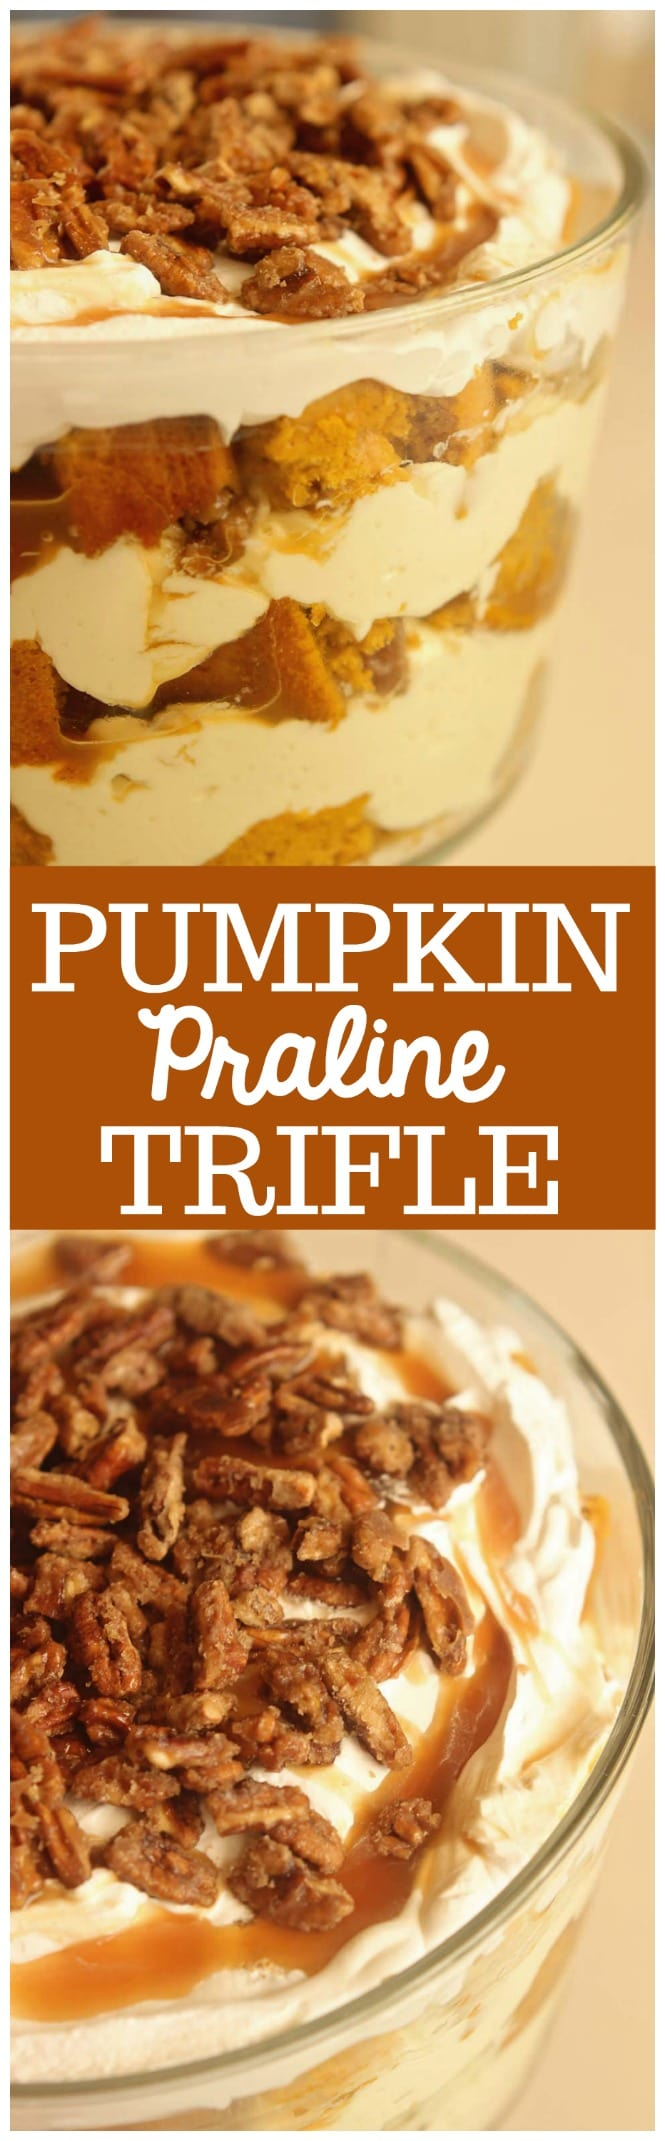 Pumpkin Praline Trifle - This is the ultimate fall dessert recipe with layers of easy pumpkin cake, cream cheese pudding, caramel, and praline pecans.  It's delicious made ahead and great for the busy holiday dinners!